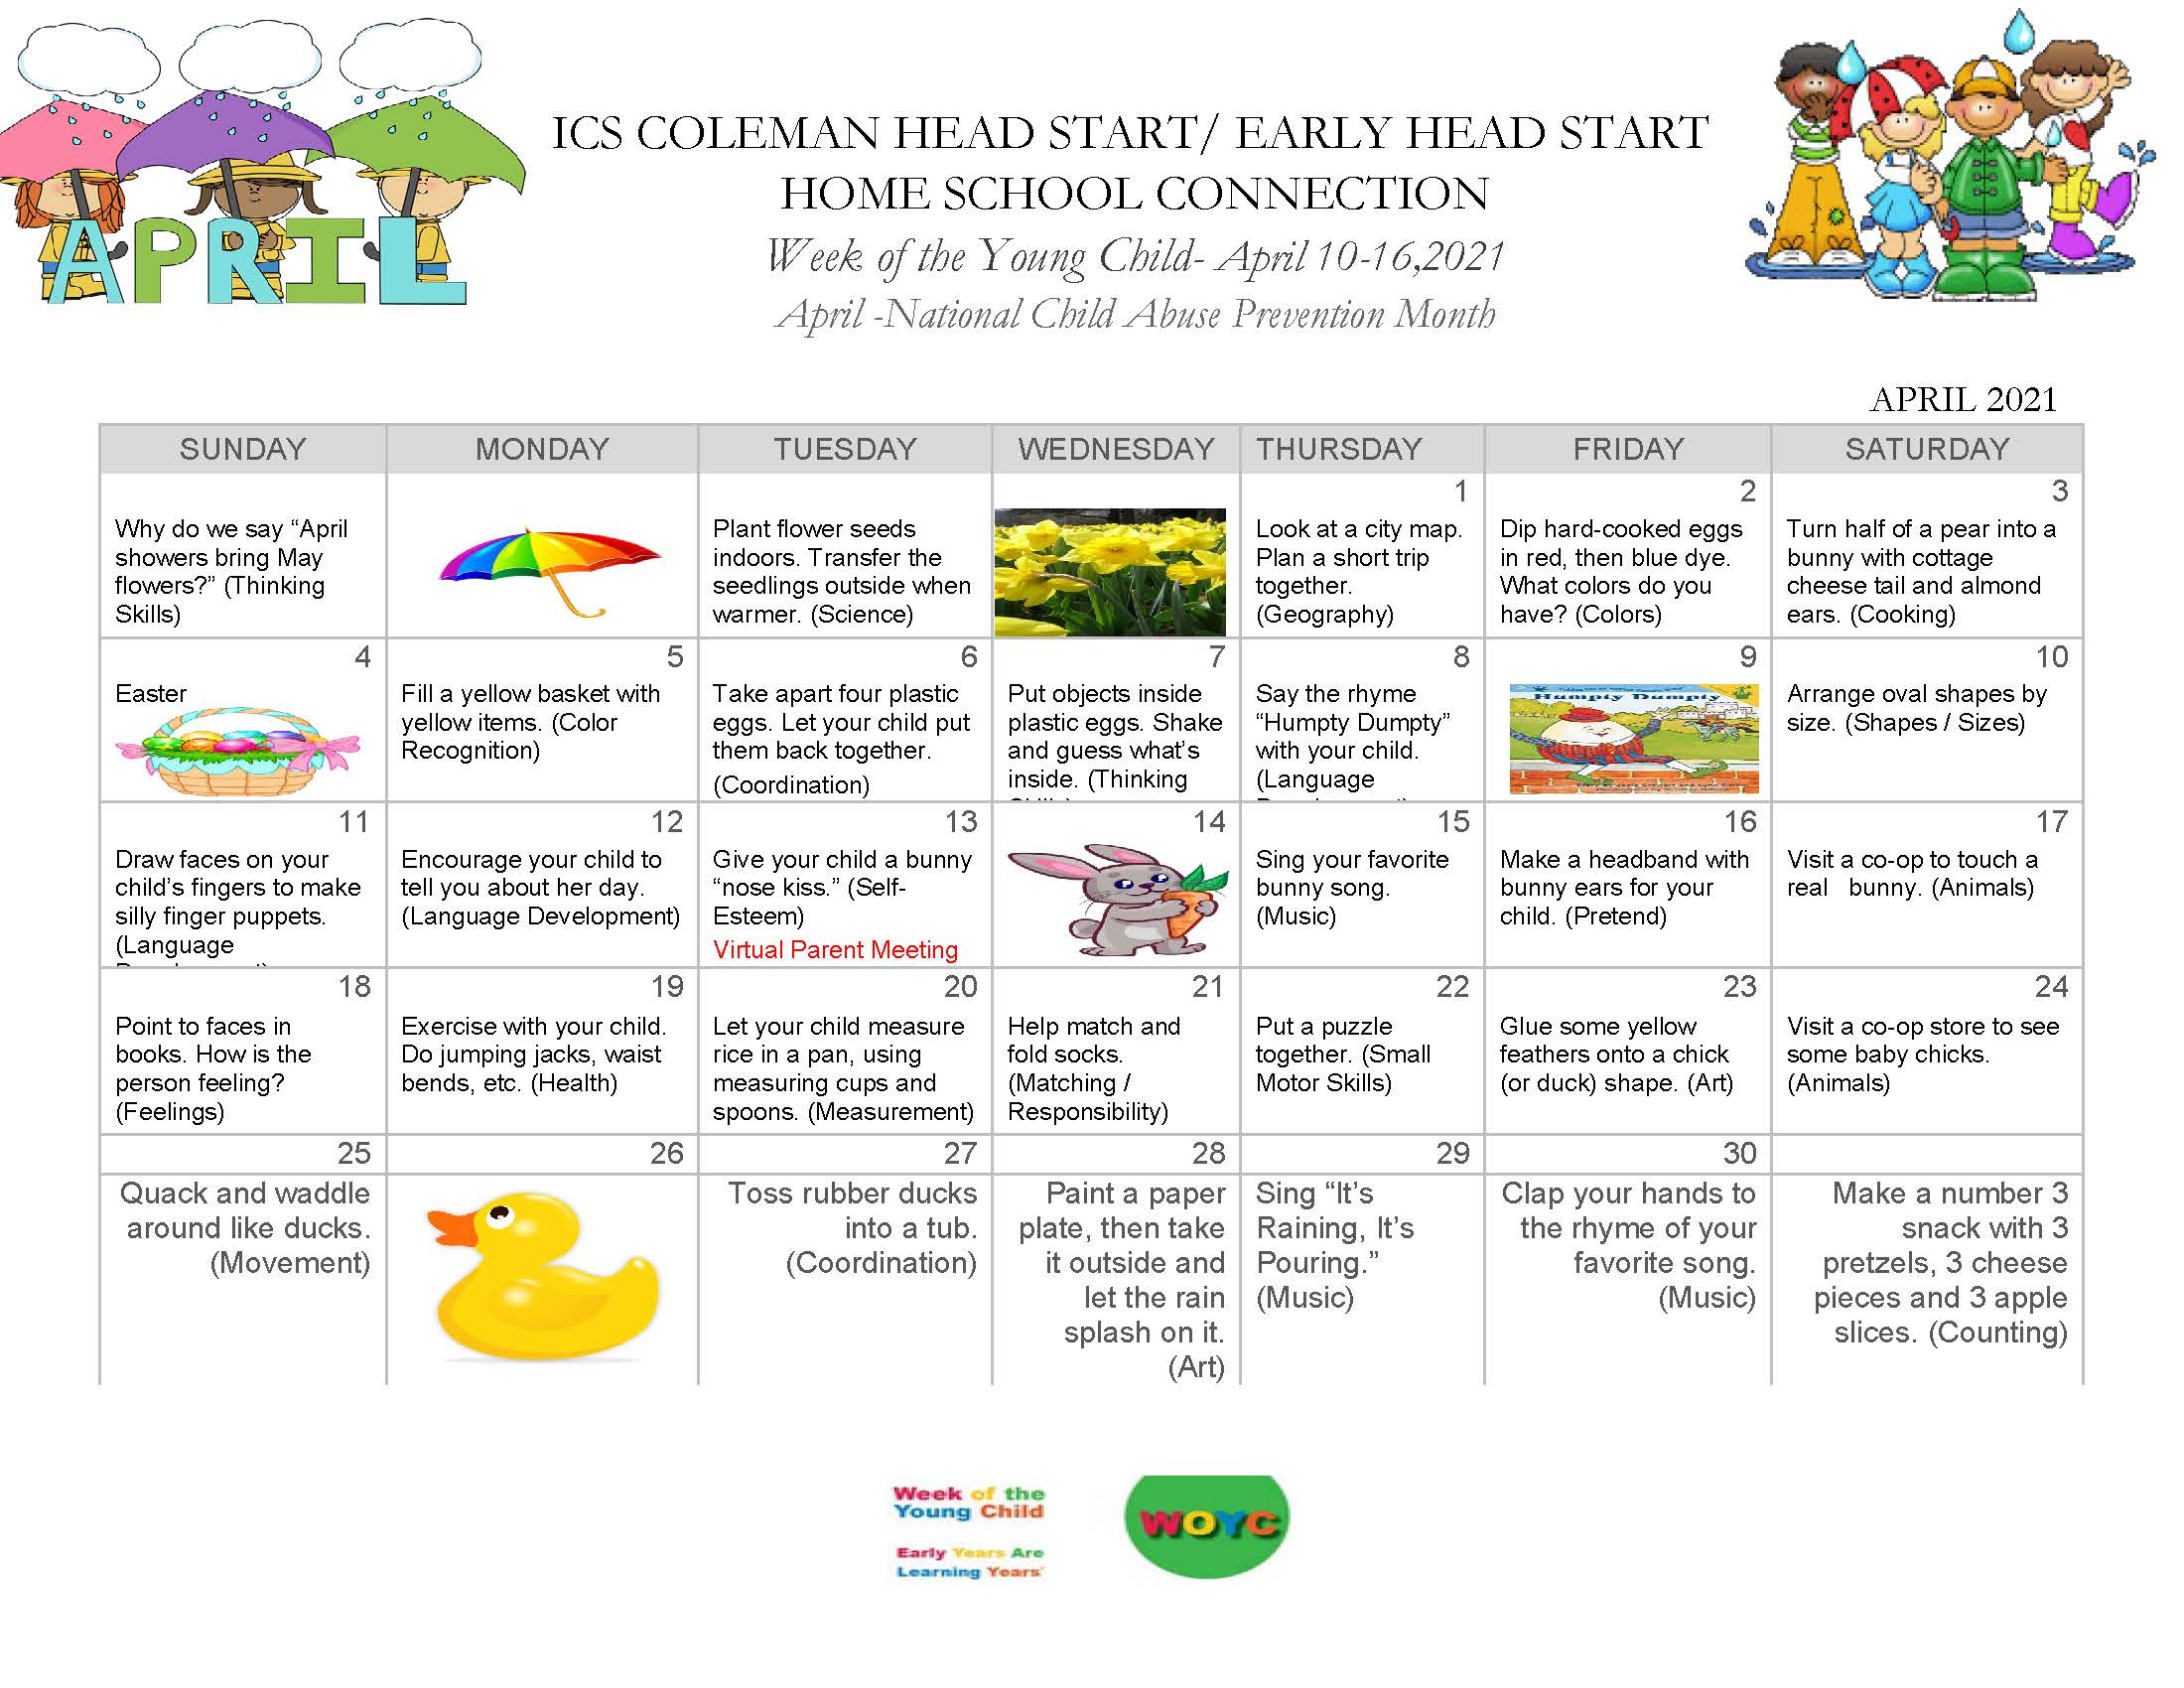 ColemanAPRIL HOME SCHOOL ACTIVITIES PROJECTS-UP-DATED-1